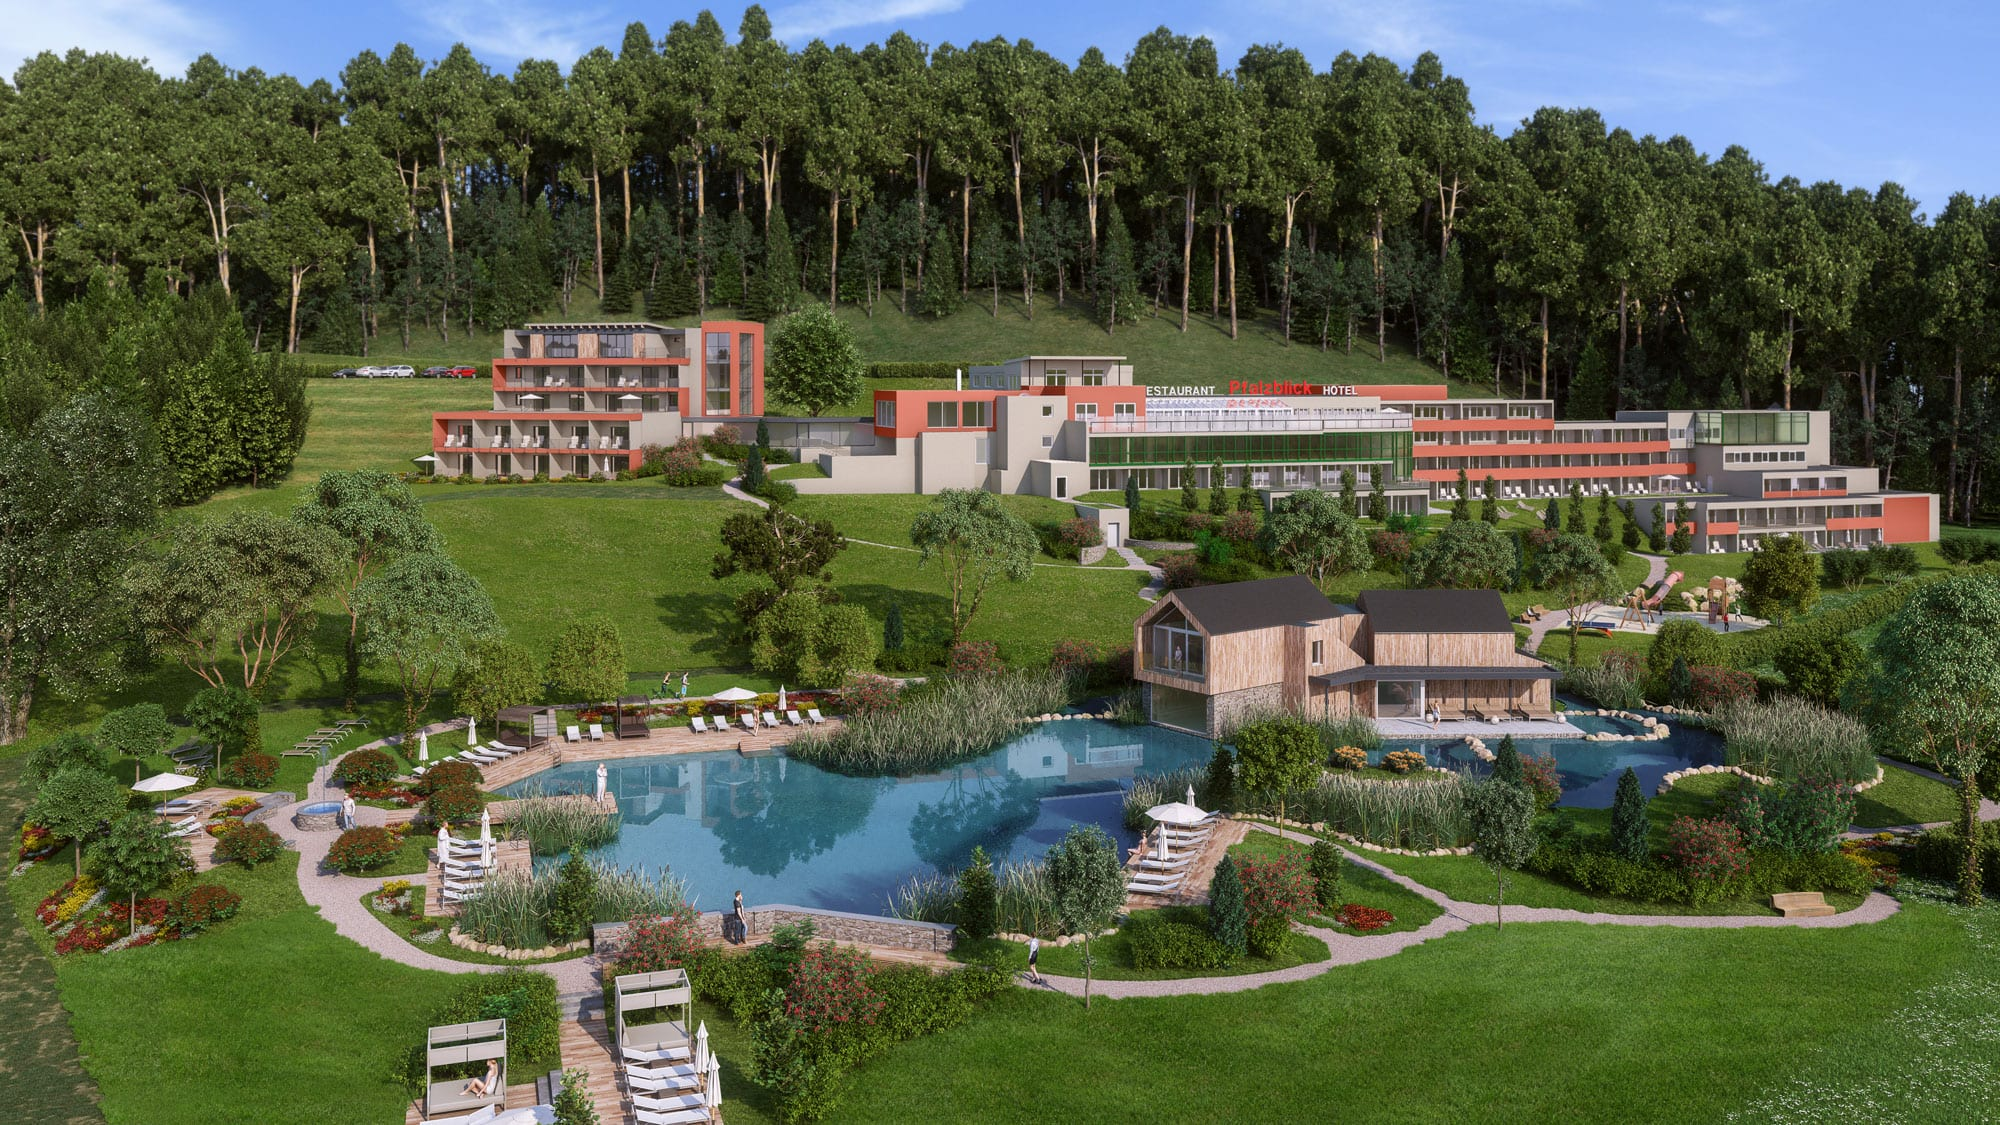 Wellnesshotel in der Pfalz: Pfalzblick Wald Spa Resort in Dahn